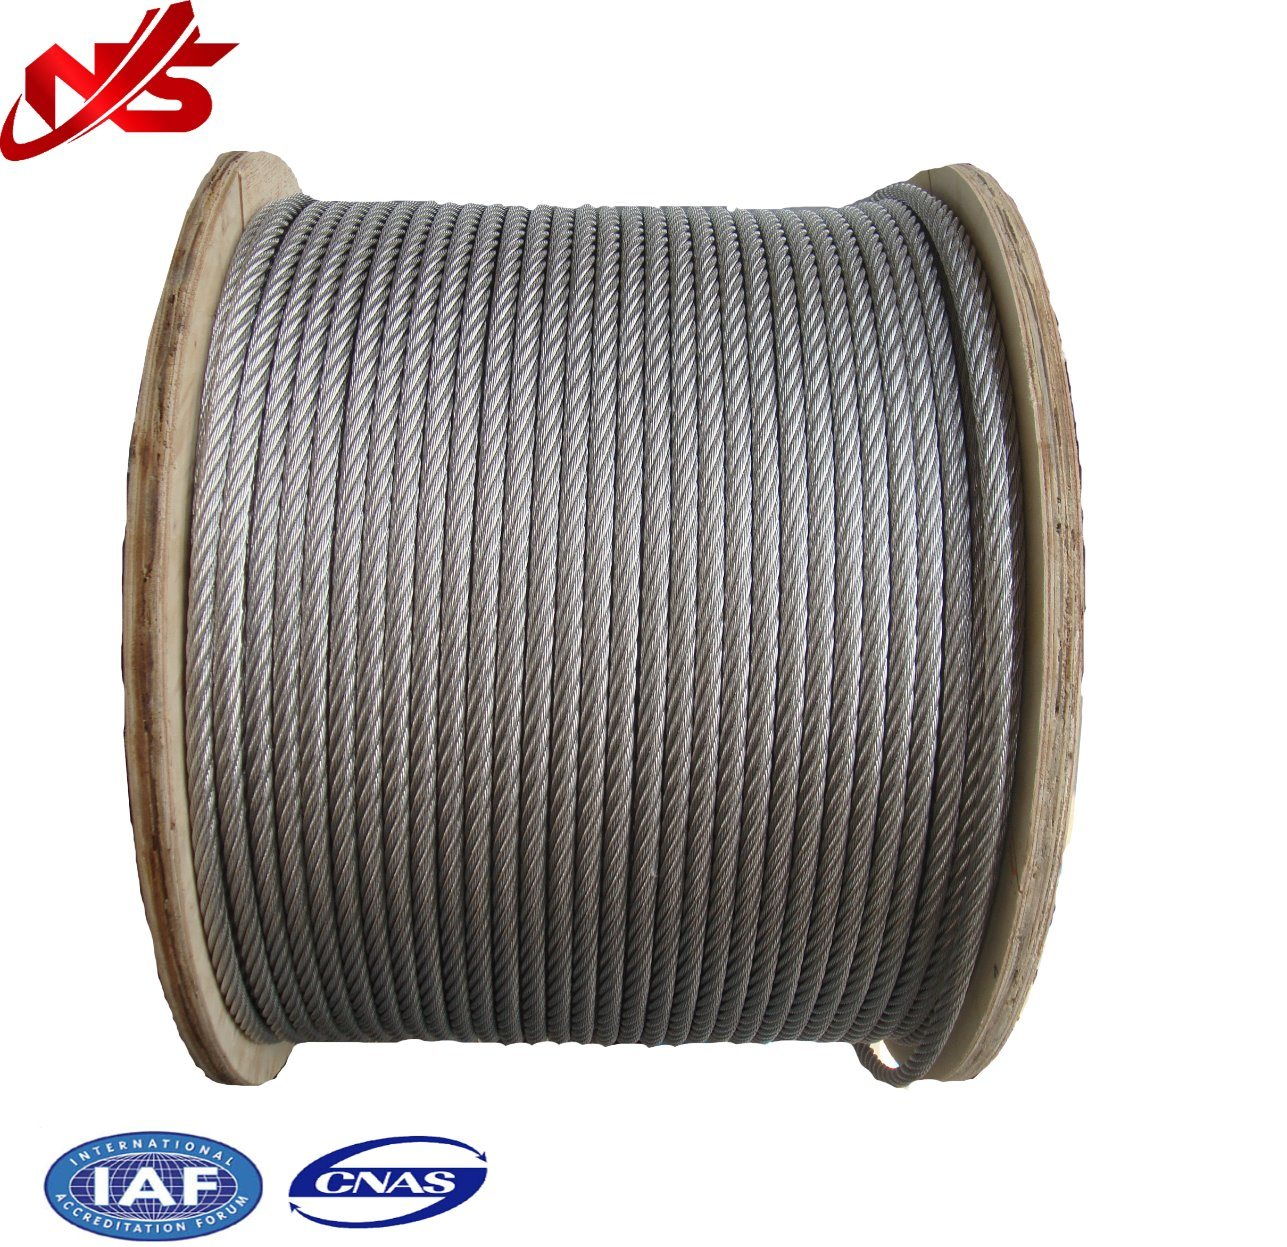 China Hot DIP Galvanized Aircraft Steel Wire Rope Cable 7X19 - China ...